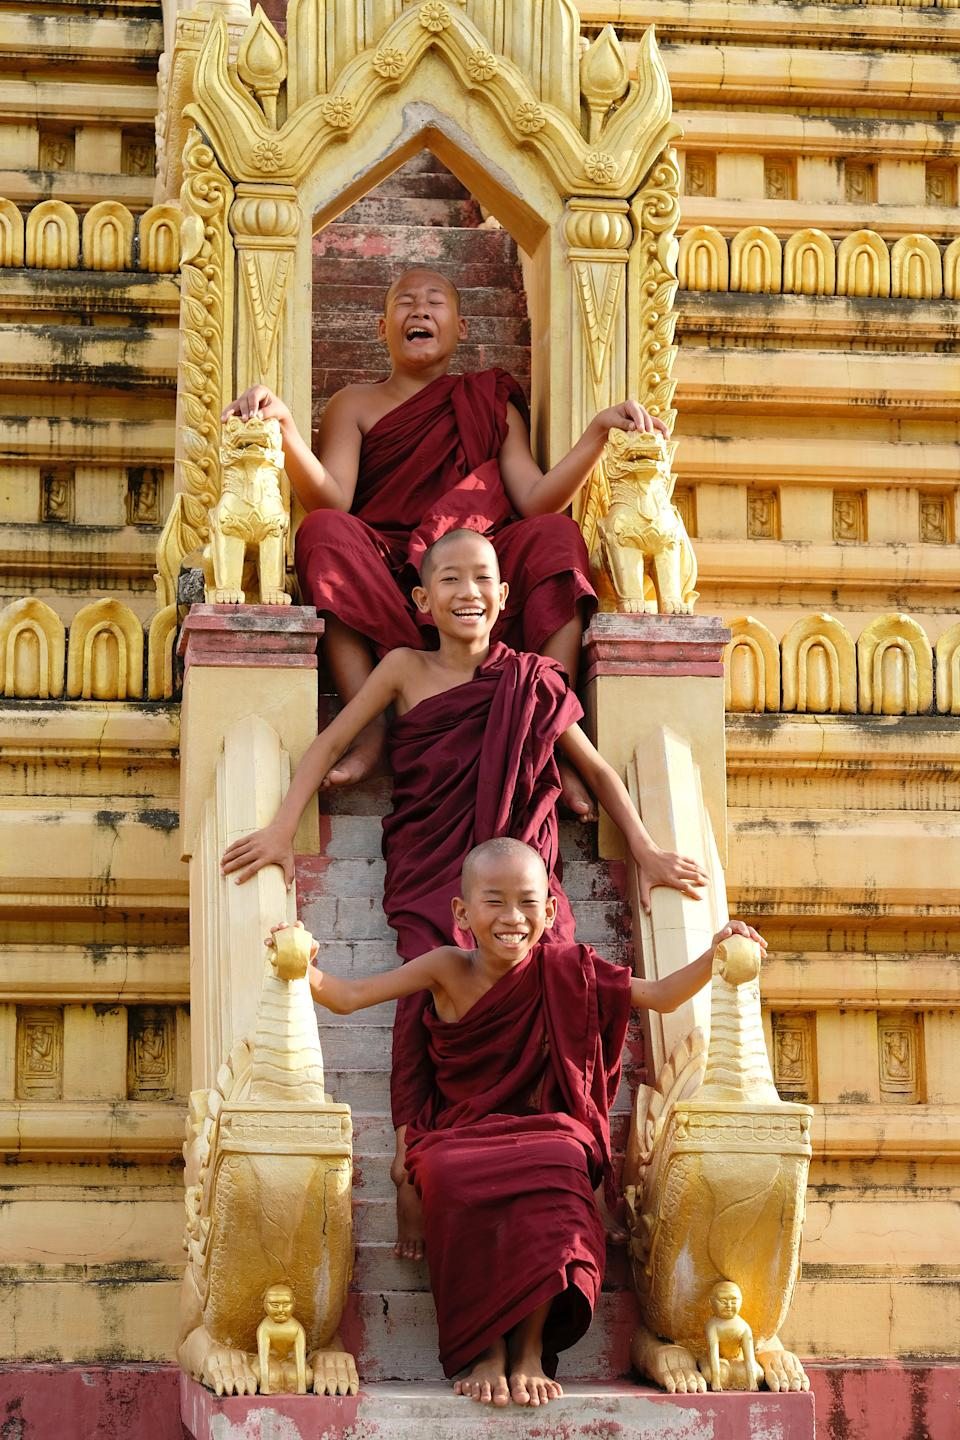 Three young Burmese monks are enjoying a break from their busy schedule in Indonesia. [Photo: SWNS]